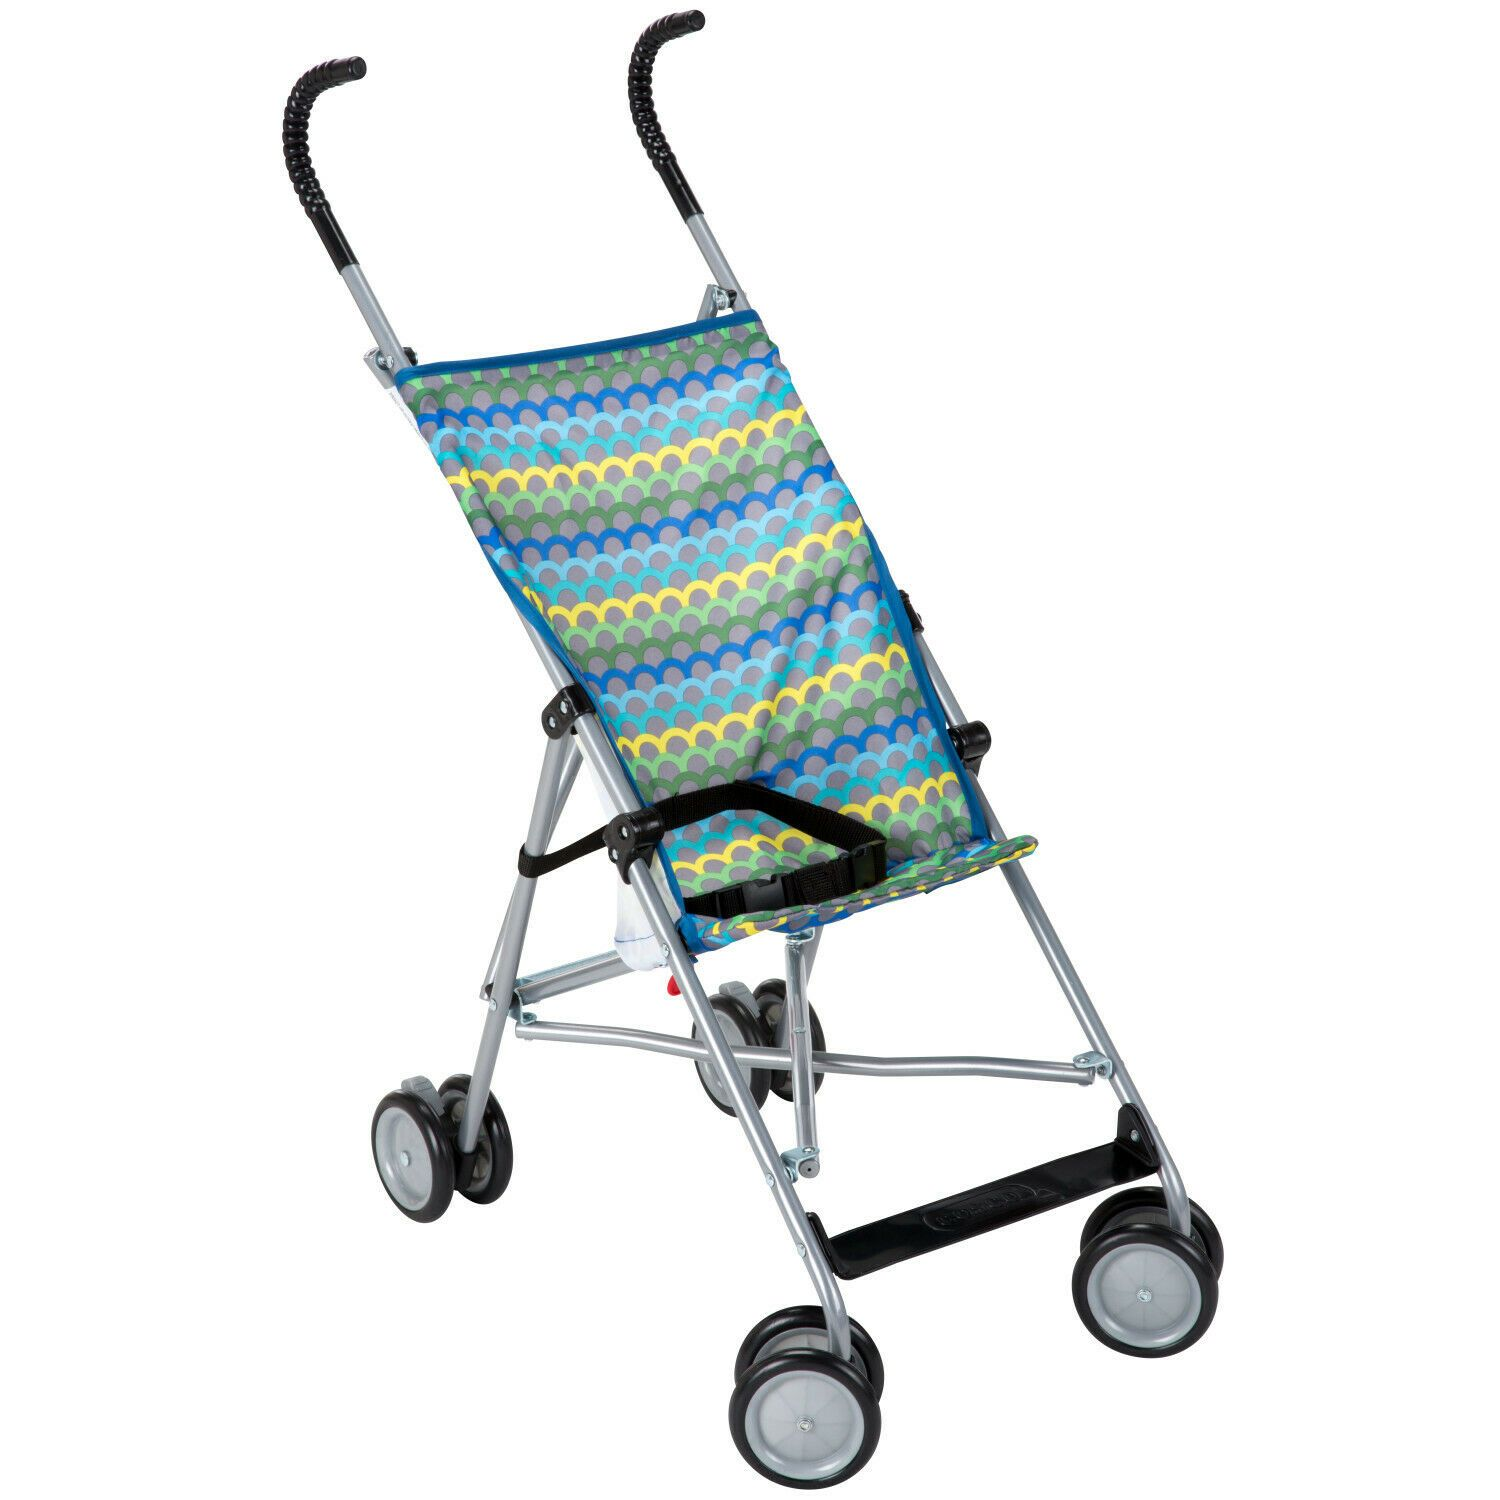 Cosco Umbrella Stroller with Lightweight Frame and Compact